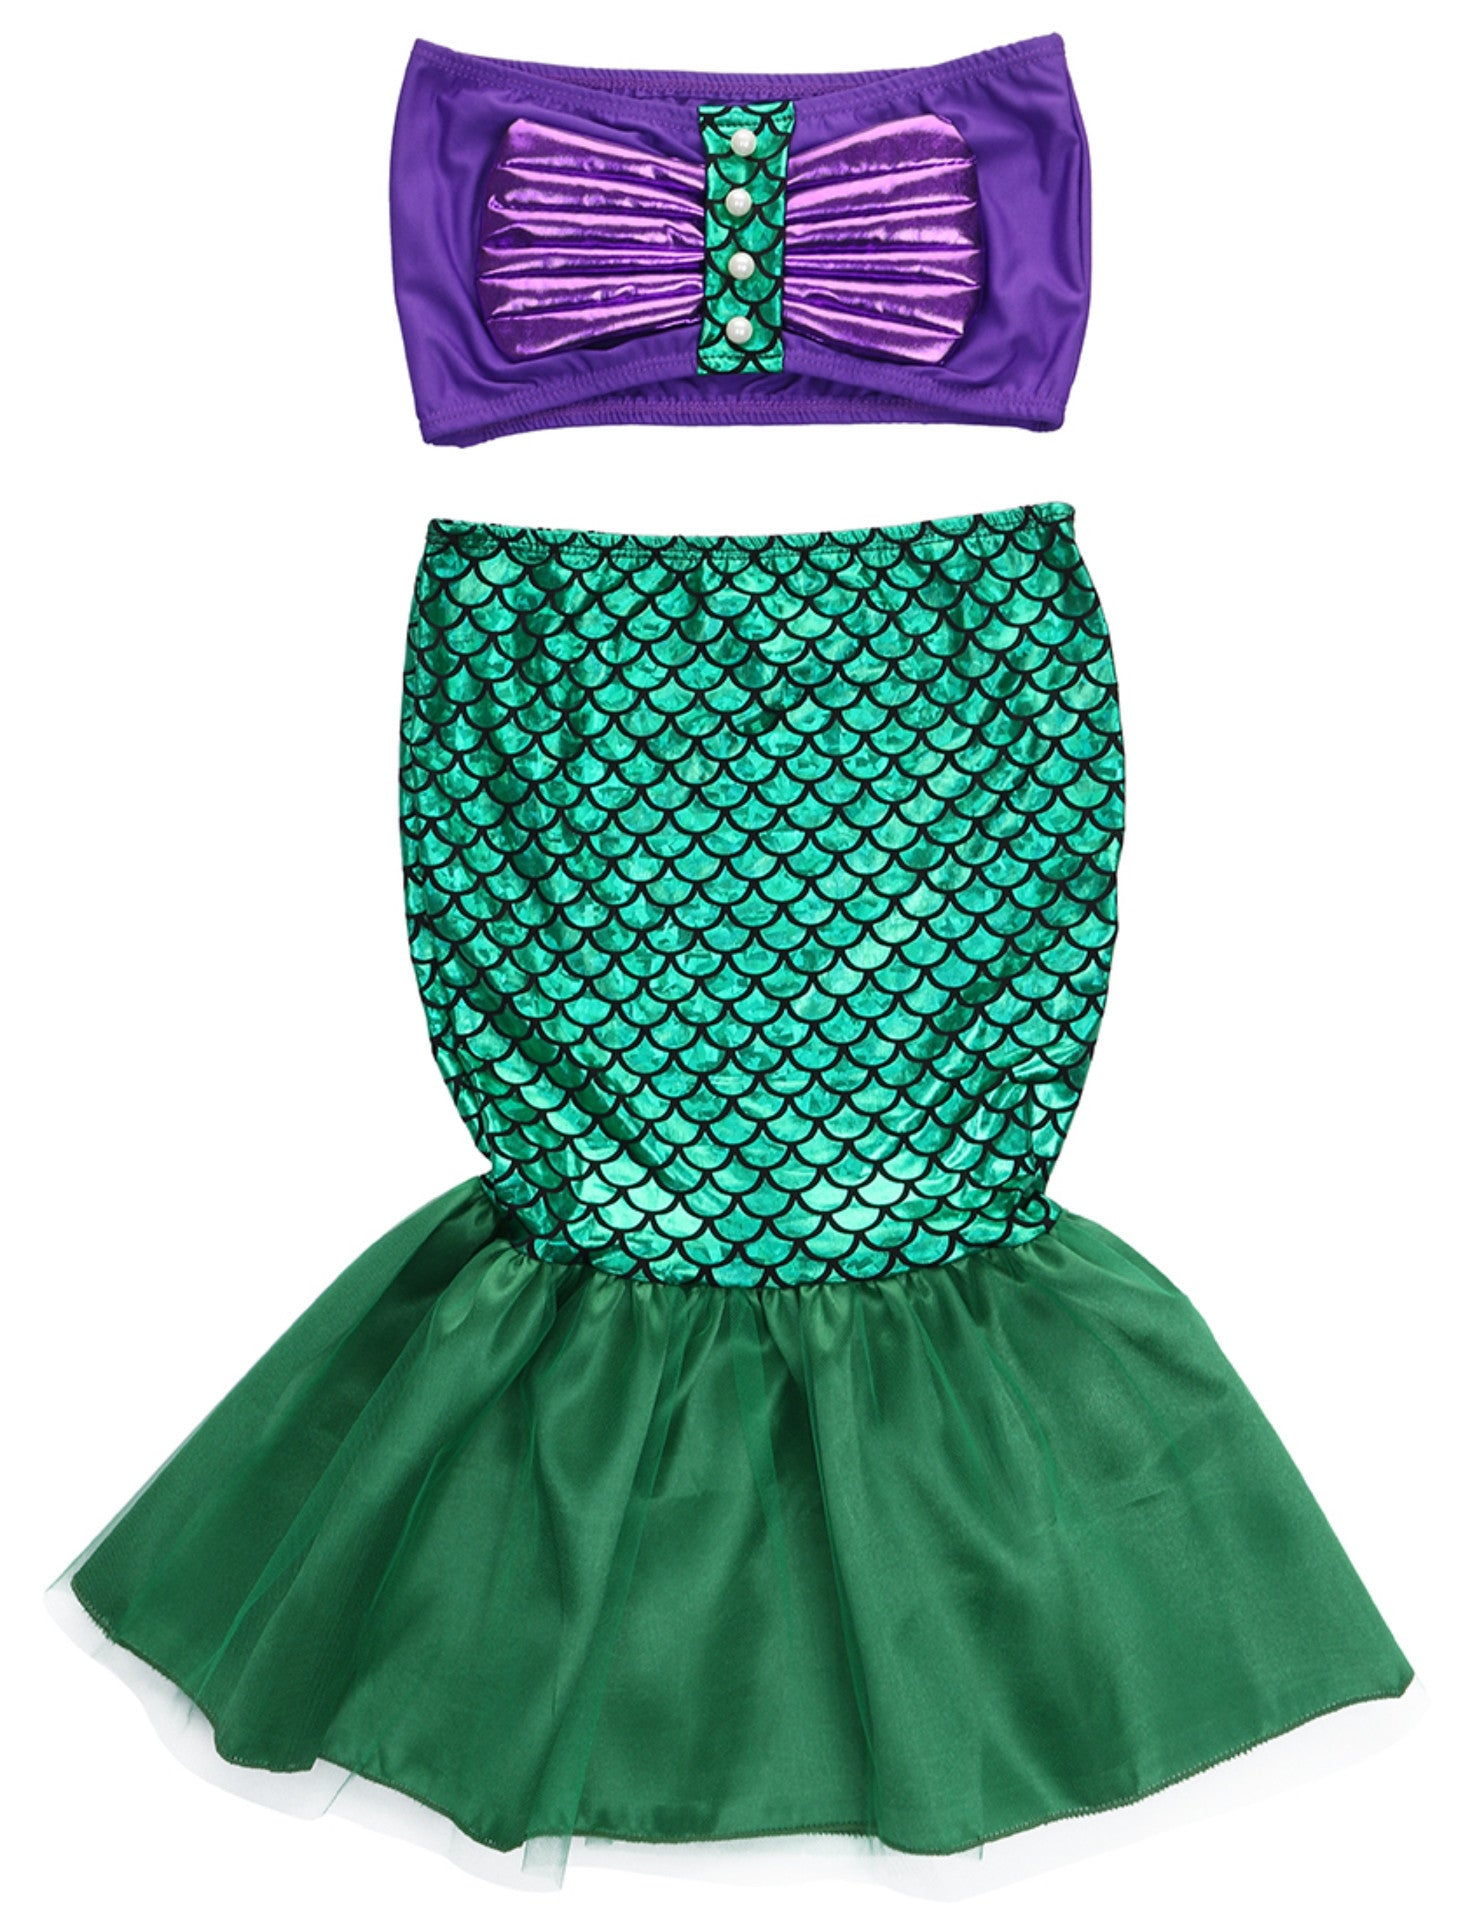 b2f1934f9e26b Mermaid Swimsuit Set for Girls - Little TroubleMakers | Kids Toys and  Fashion